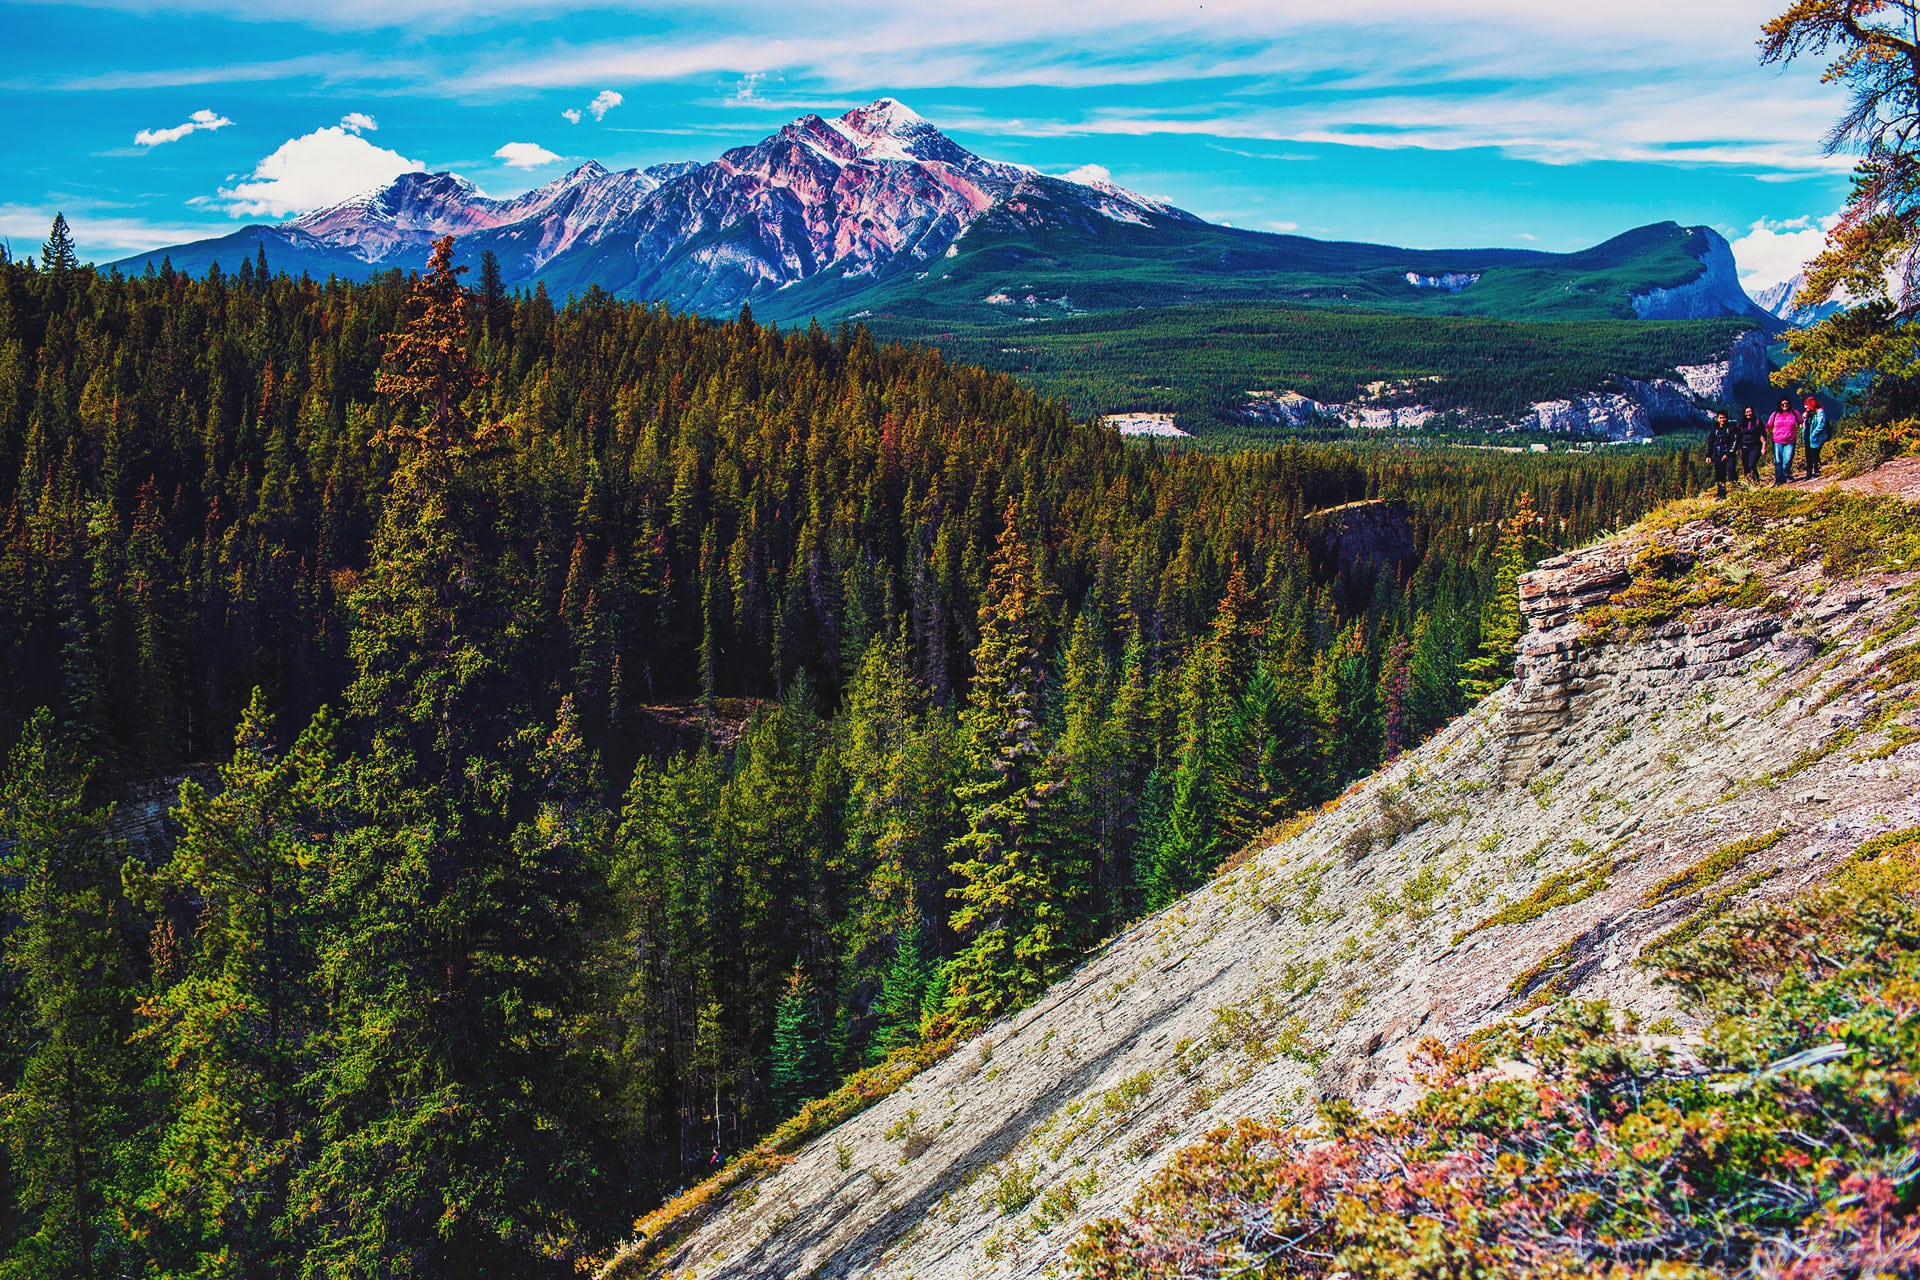 Forest valley and mountains can be seen at the Maligne Canyon hike Jasper National Park Alberta Canada